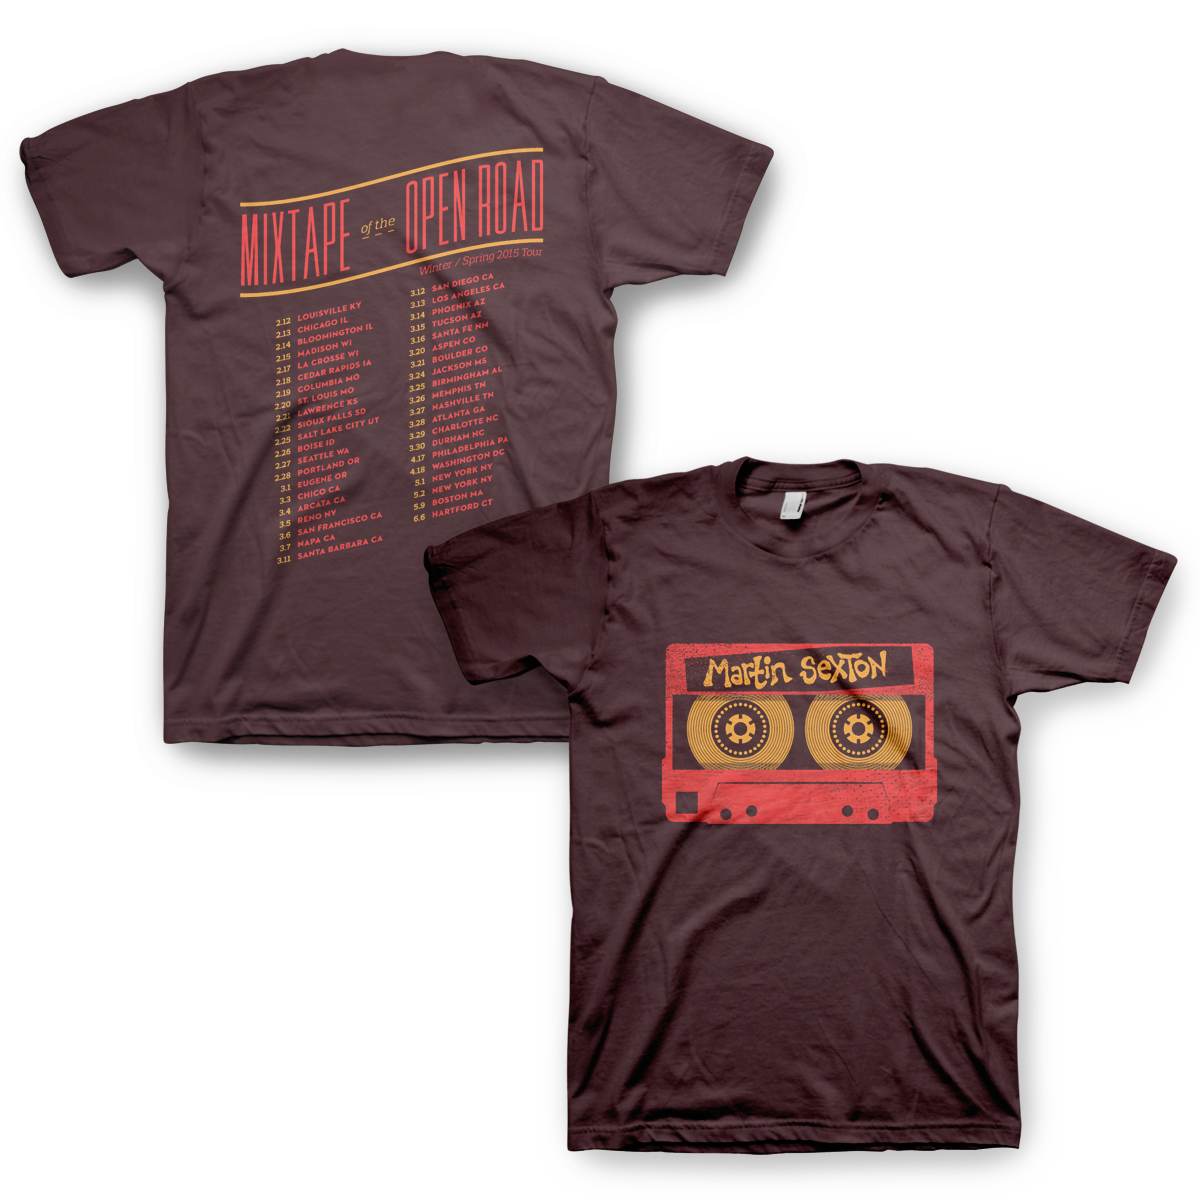 Mixtape of the Open Road 2015 Tour T-Shirt